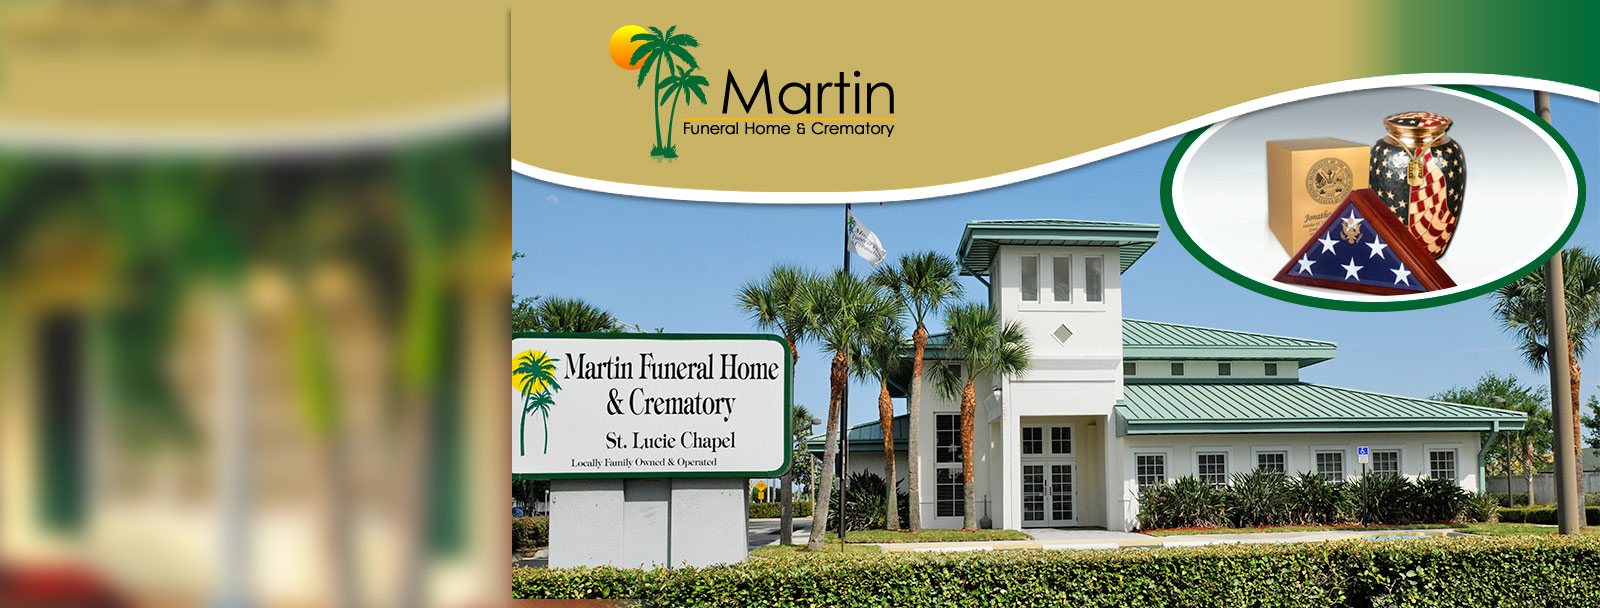 Martin Funeral Home Port St Lucie